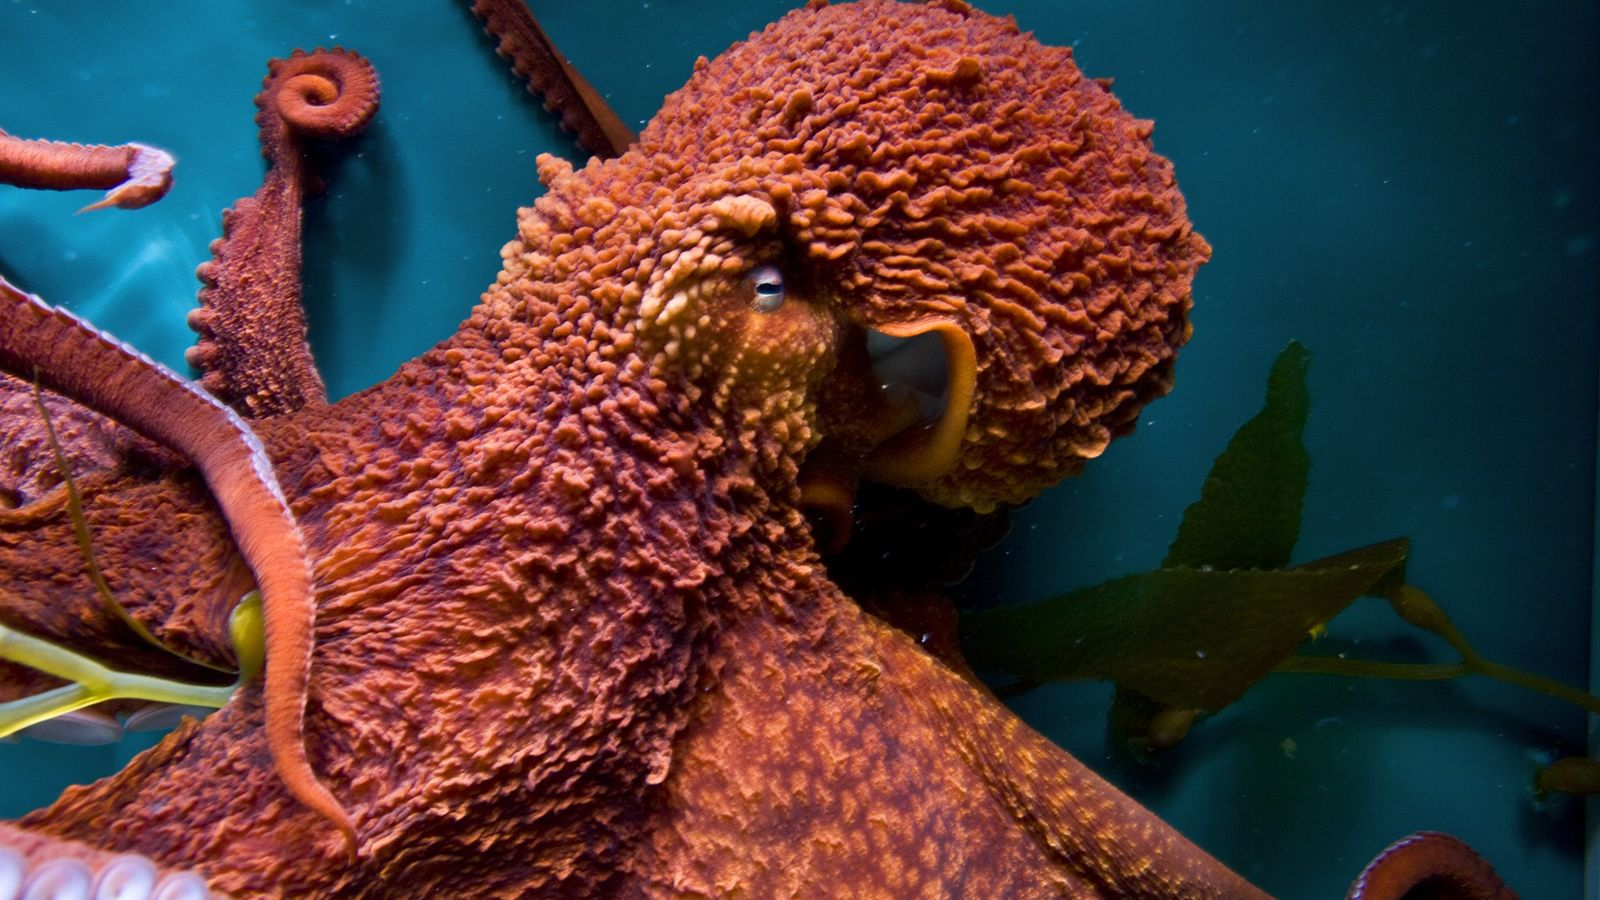 Giant Pacific octopuses have learned to open jars, mimic other octopuses, and solve mazes in lab ...